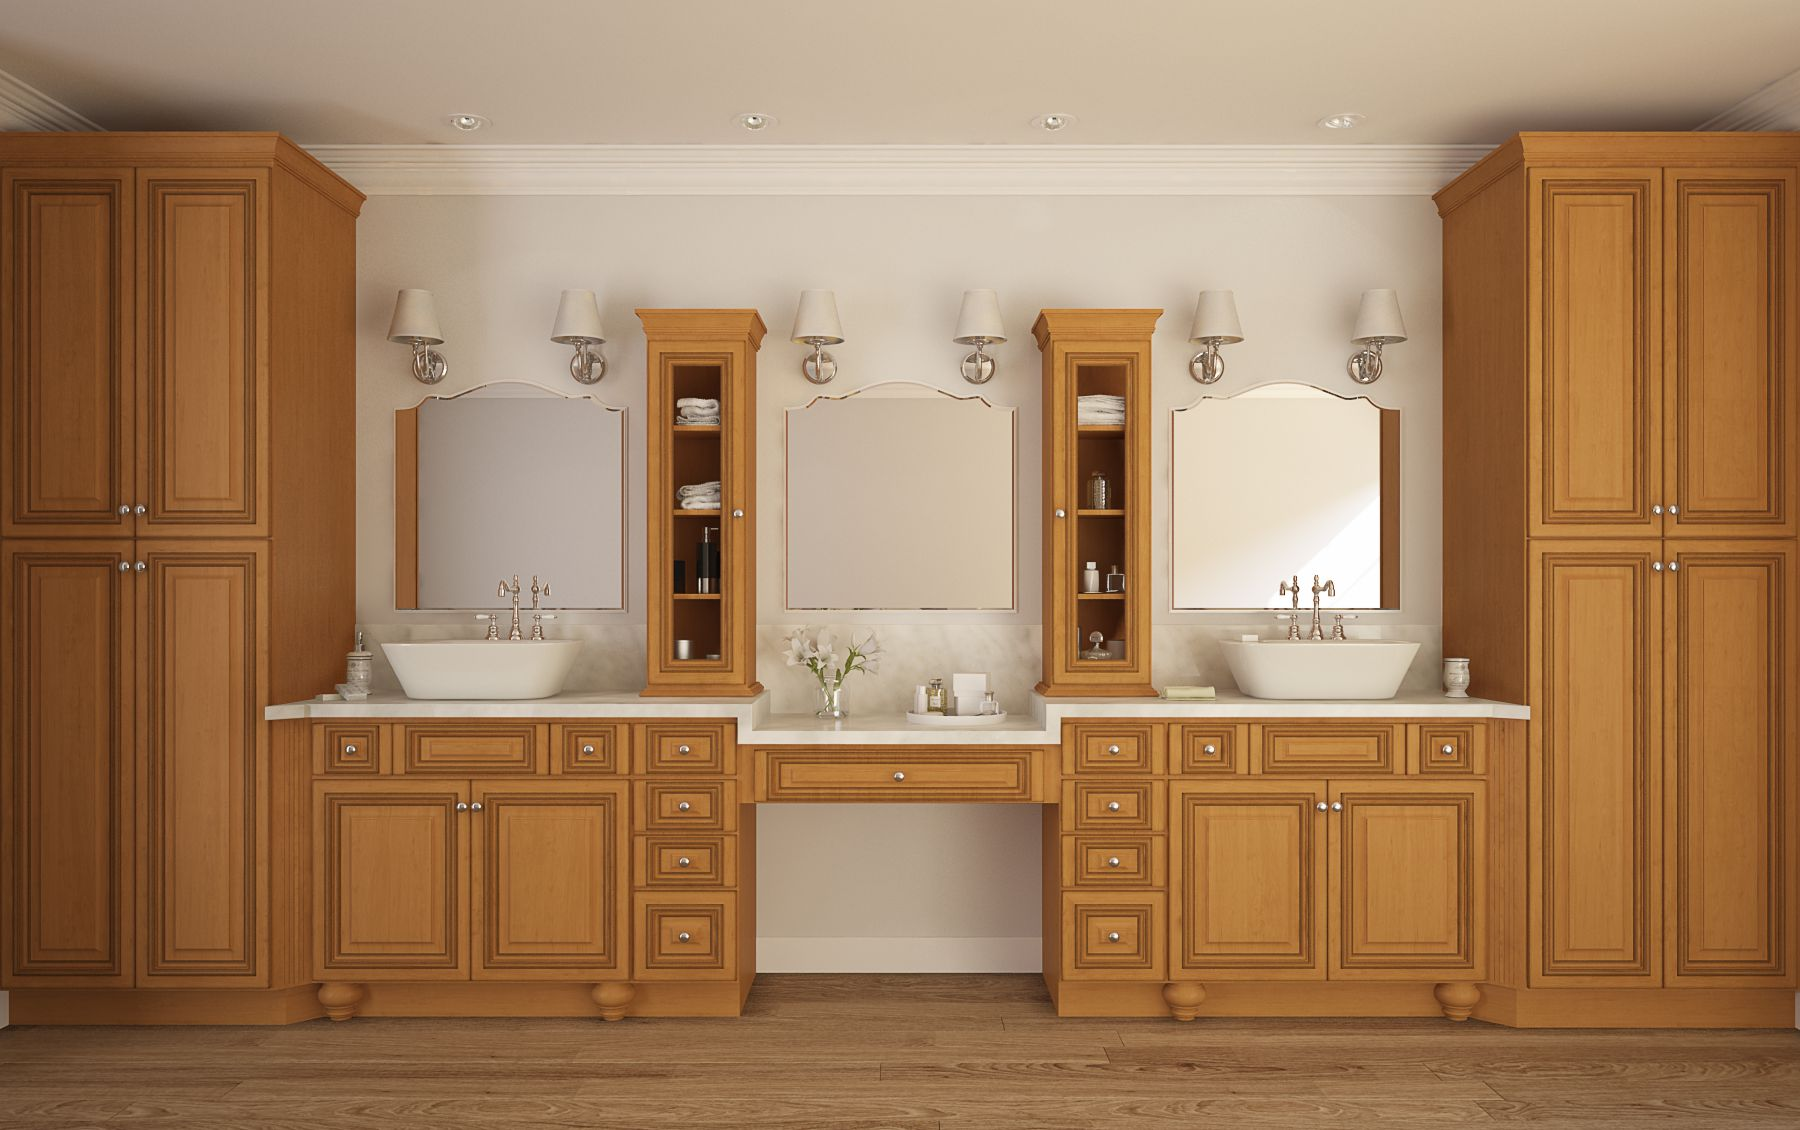 Roosevelt%25252520Ginger%25252520with%25252520Black%25252520Accent%25252520Bathroom%25252520Vanity